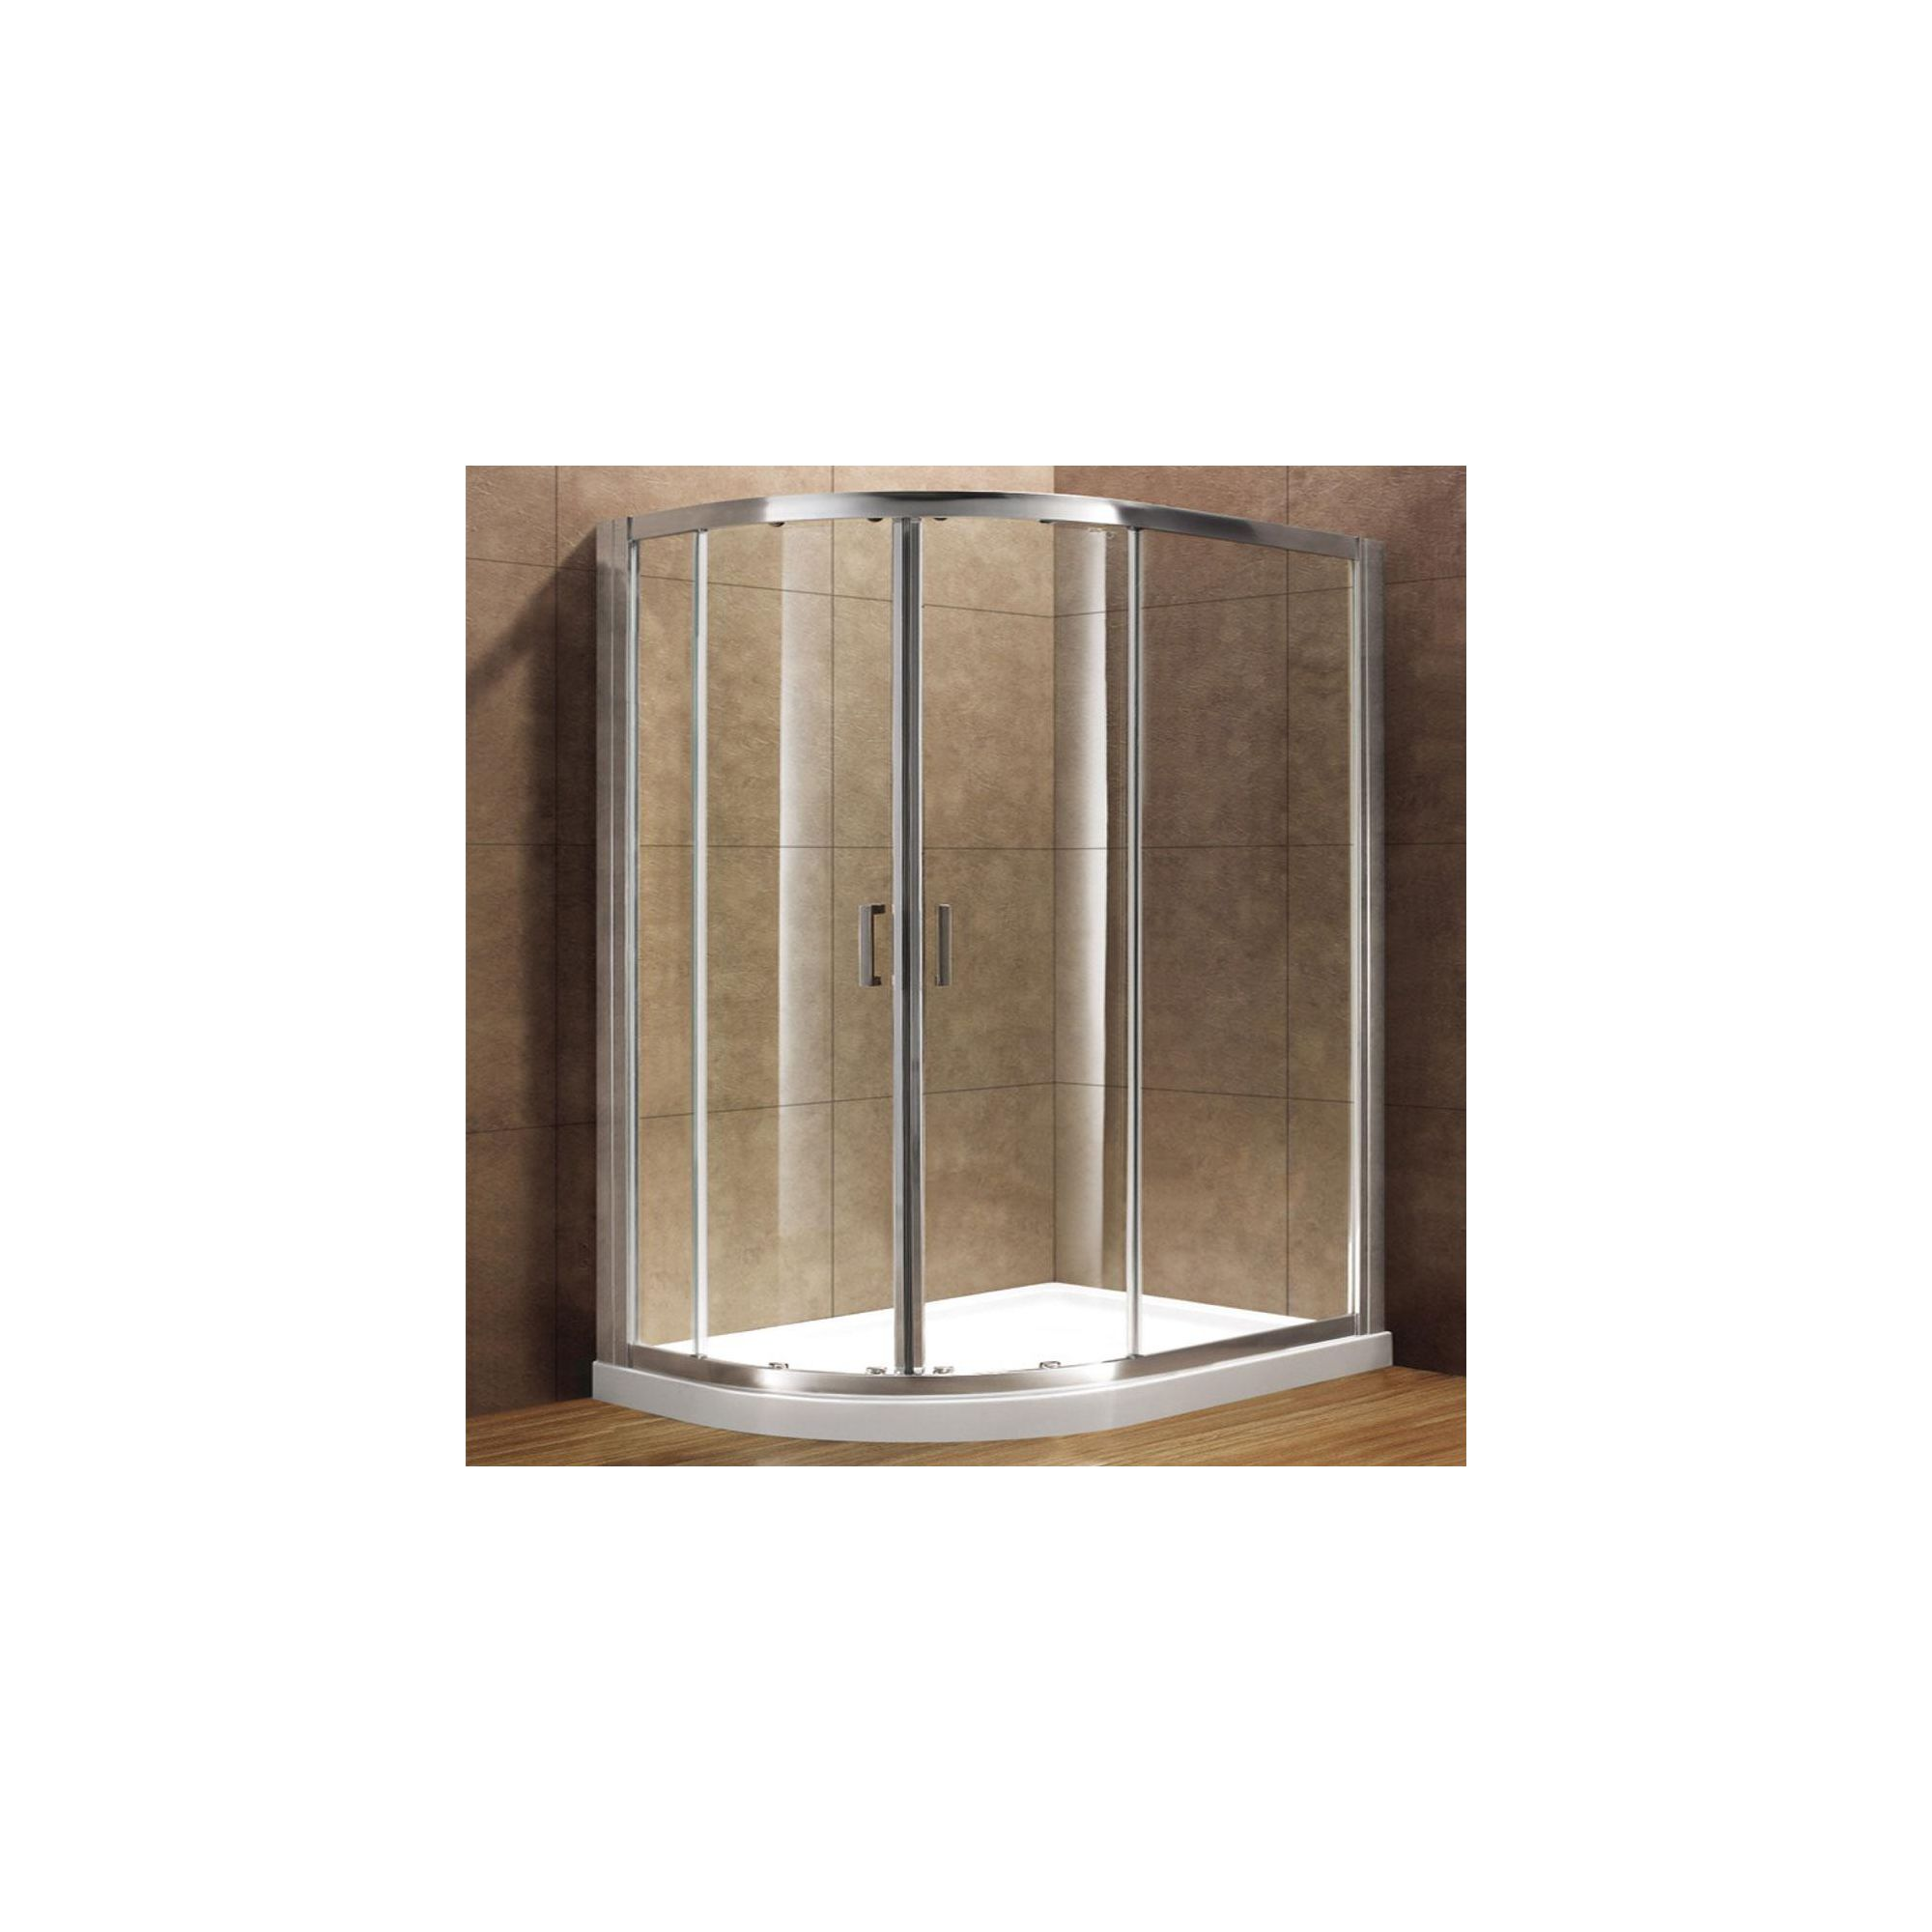 Duchy Premium Double Quadrant Shower Door, 800mm x 800mm, 8mm Glass at Tesco Direct